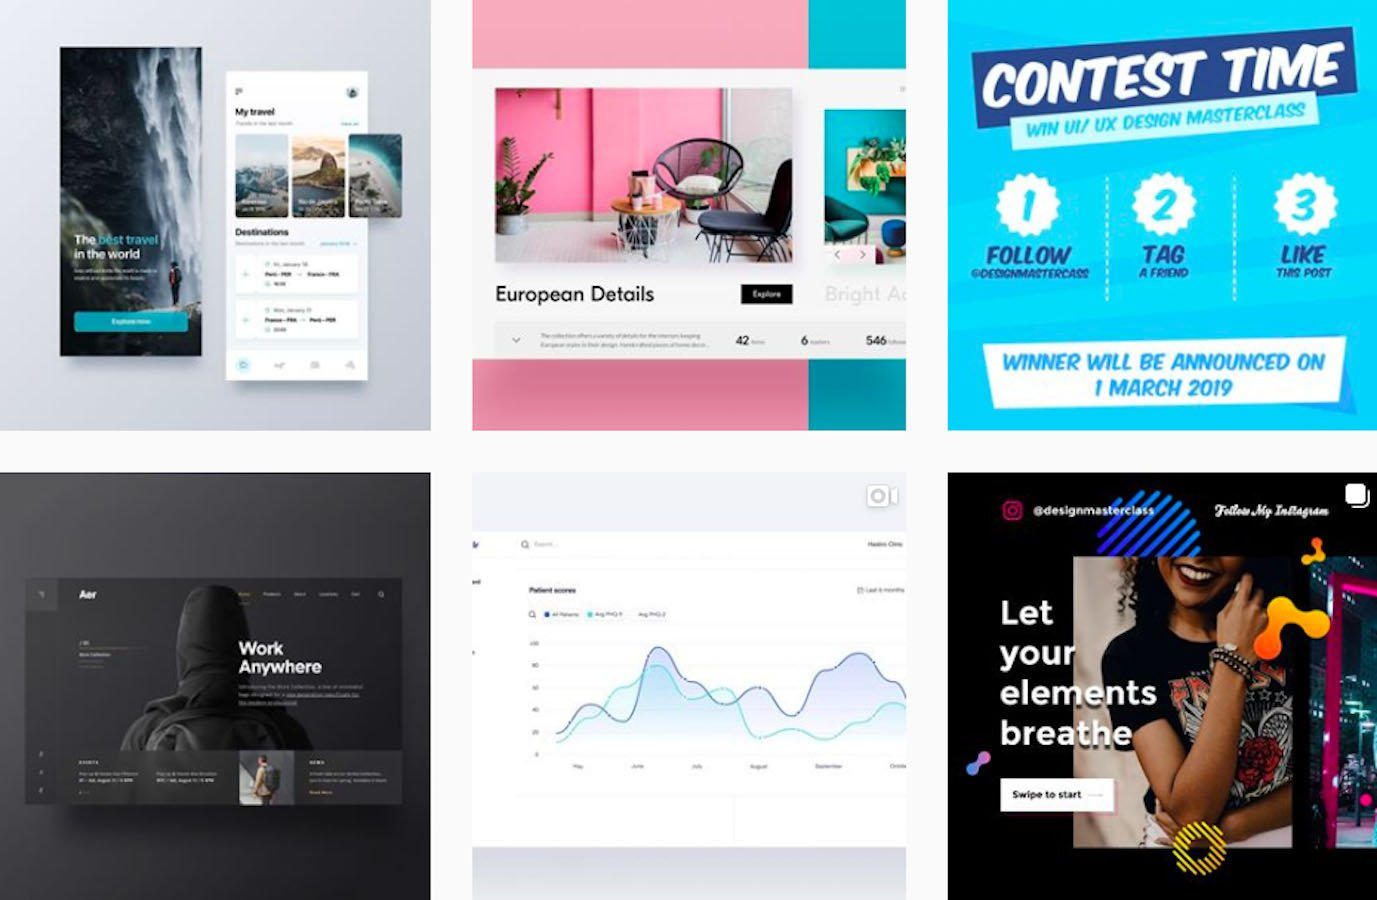 Web Design Inspiration: 110+ Accounts On Instagram and 10+ Best UX & Web Design Books in 2020 - uidesignpatterns